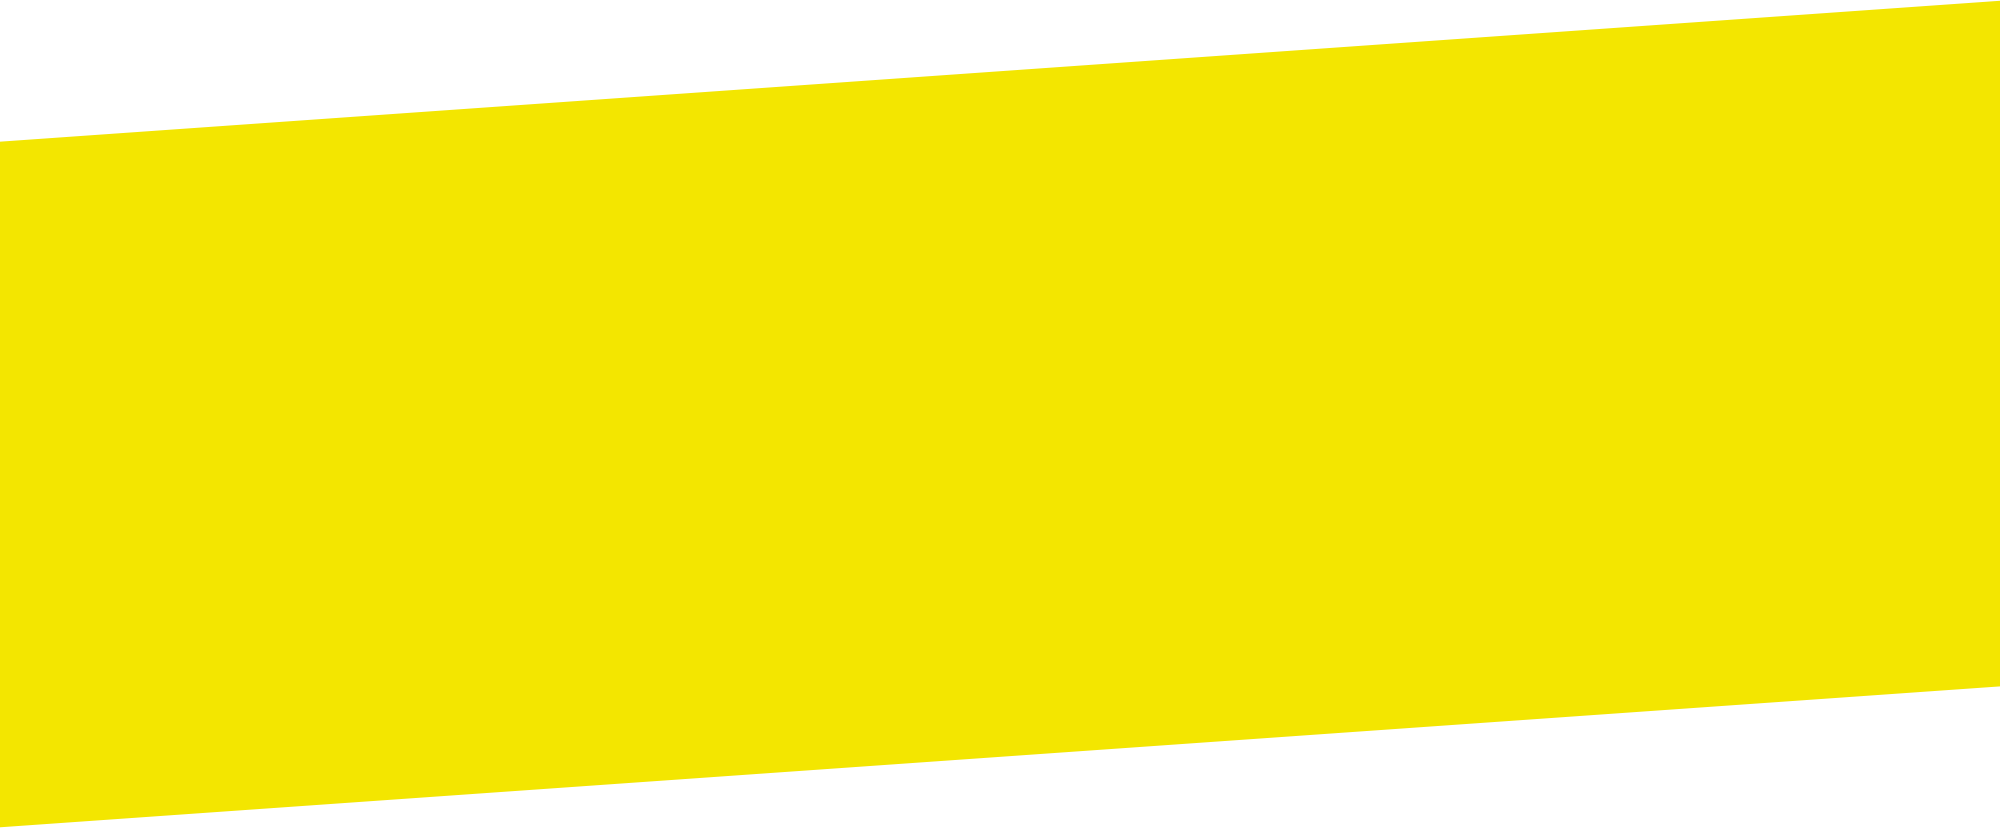 SAU - background gold x830.png